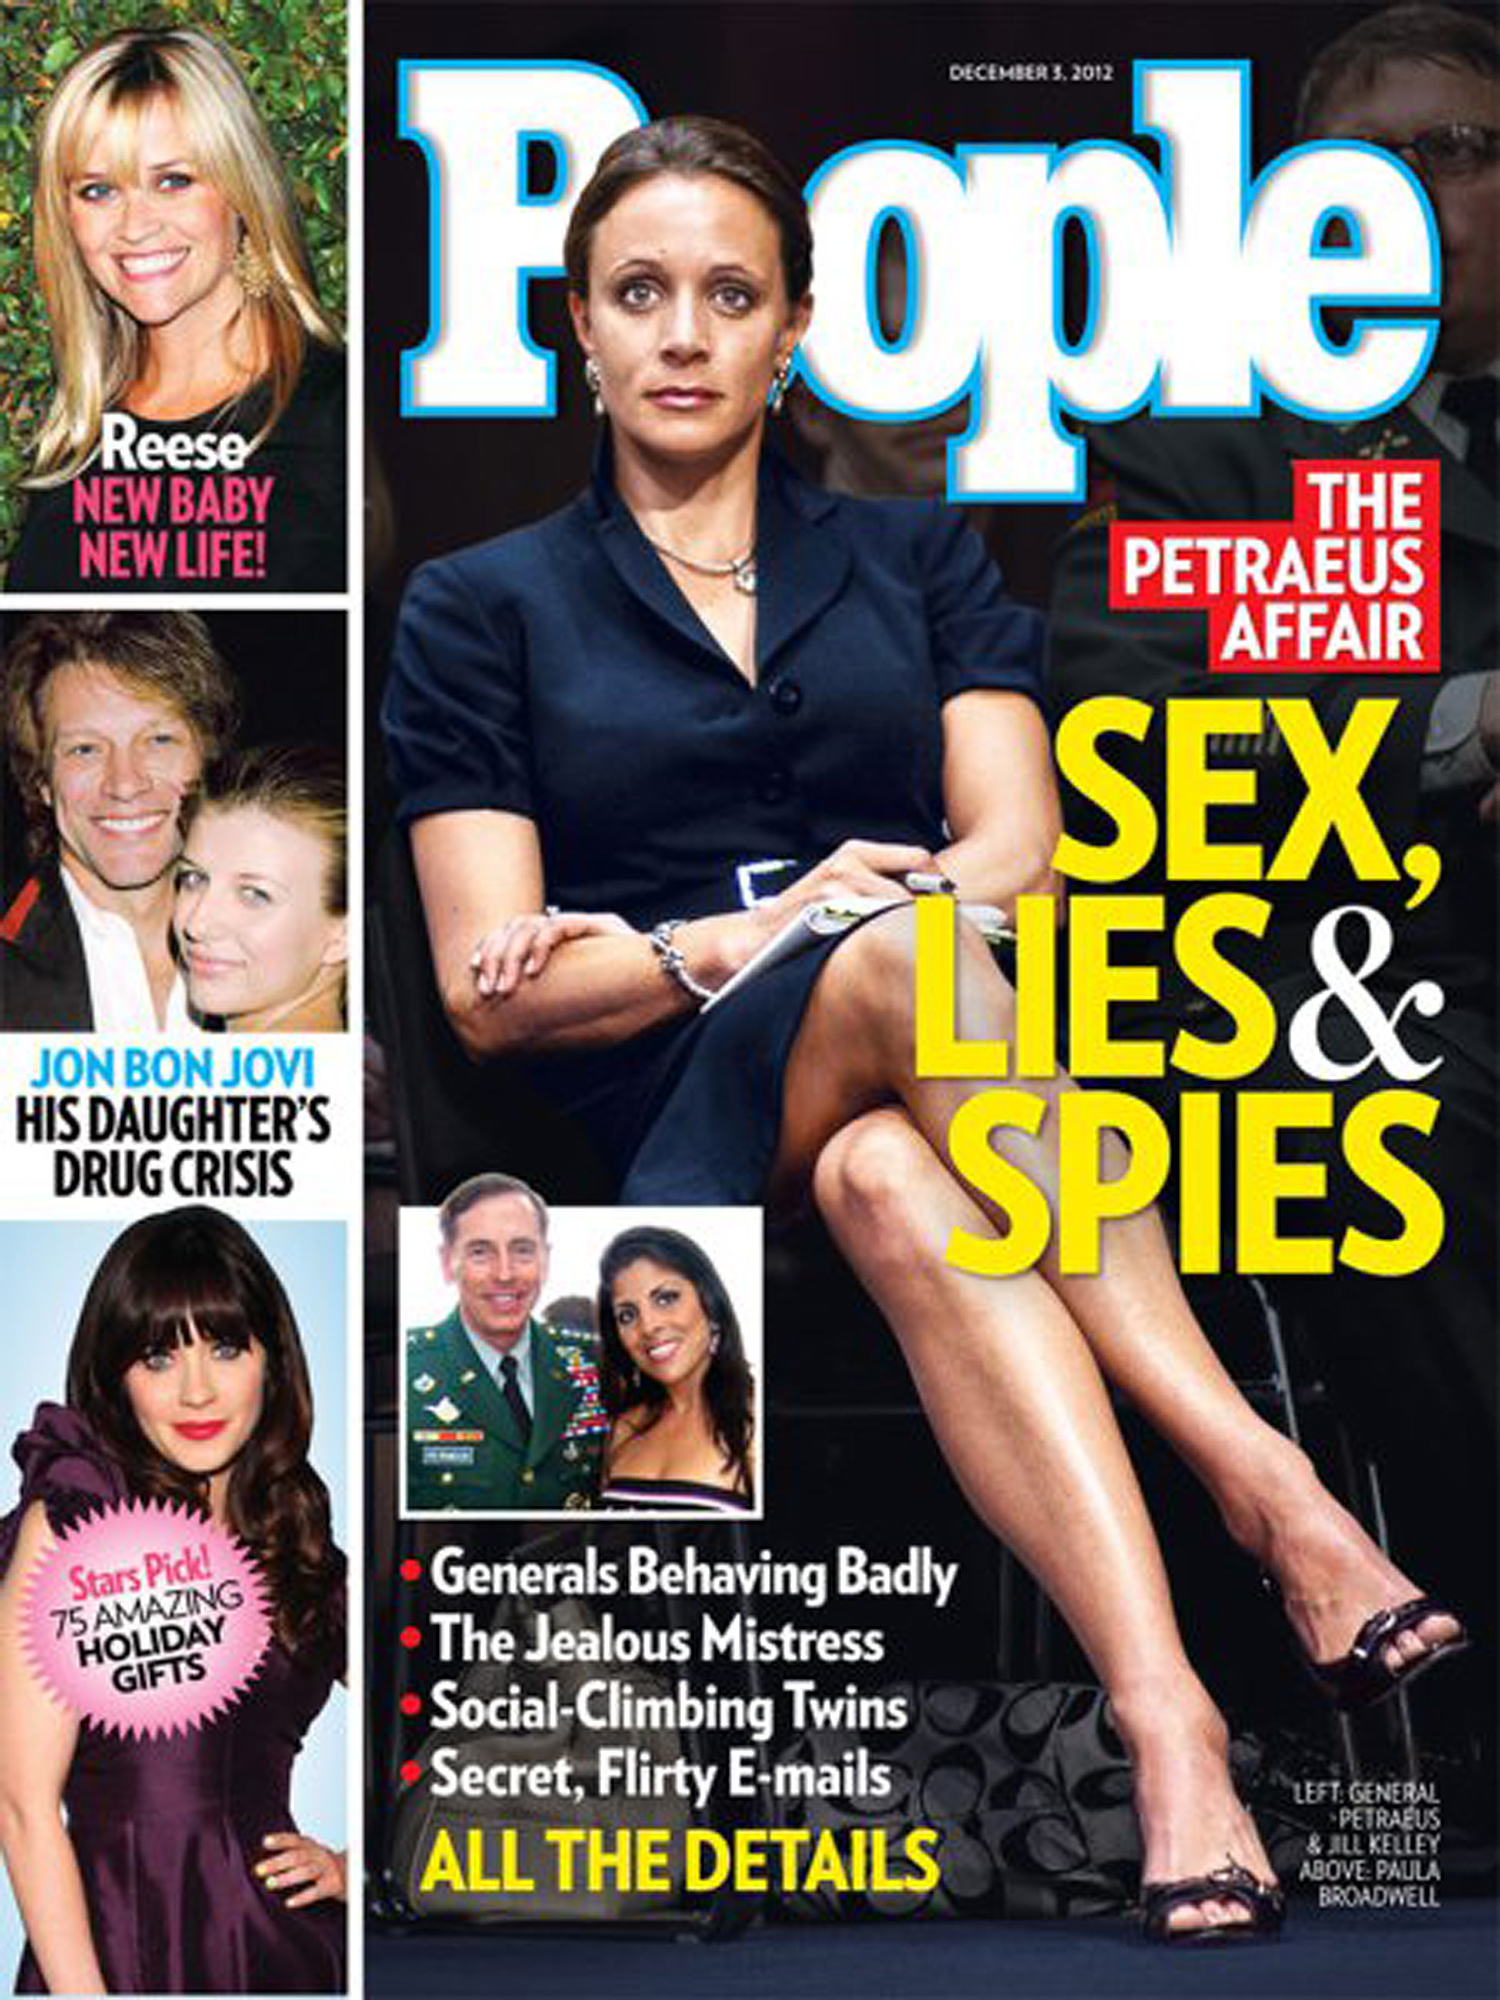 people-dec-1-cover-news